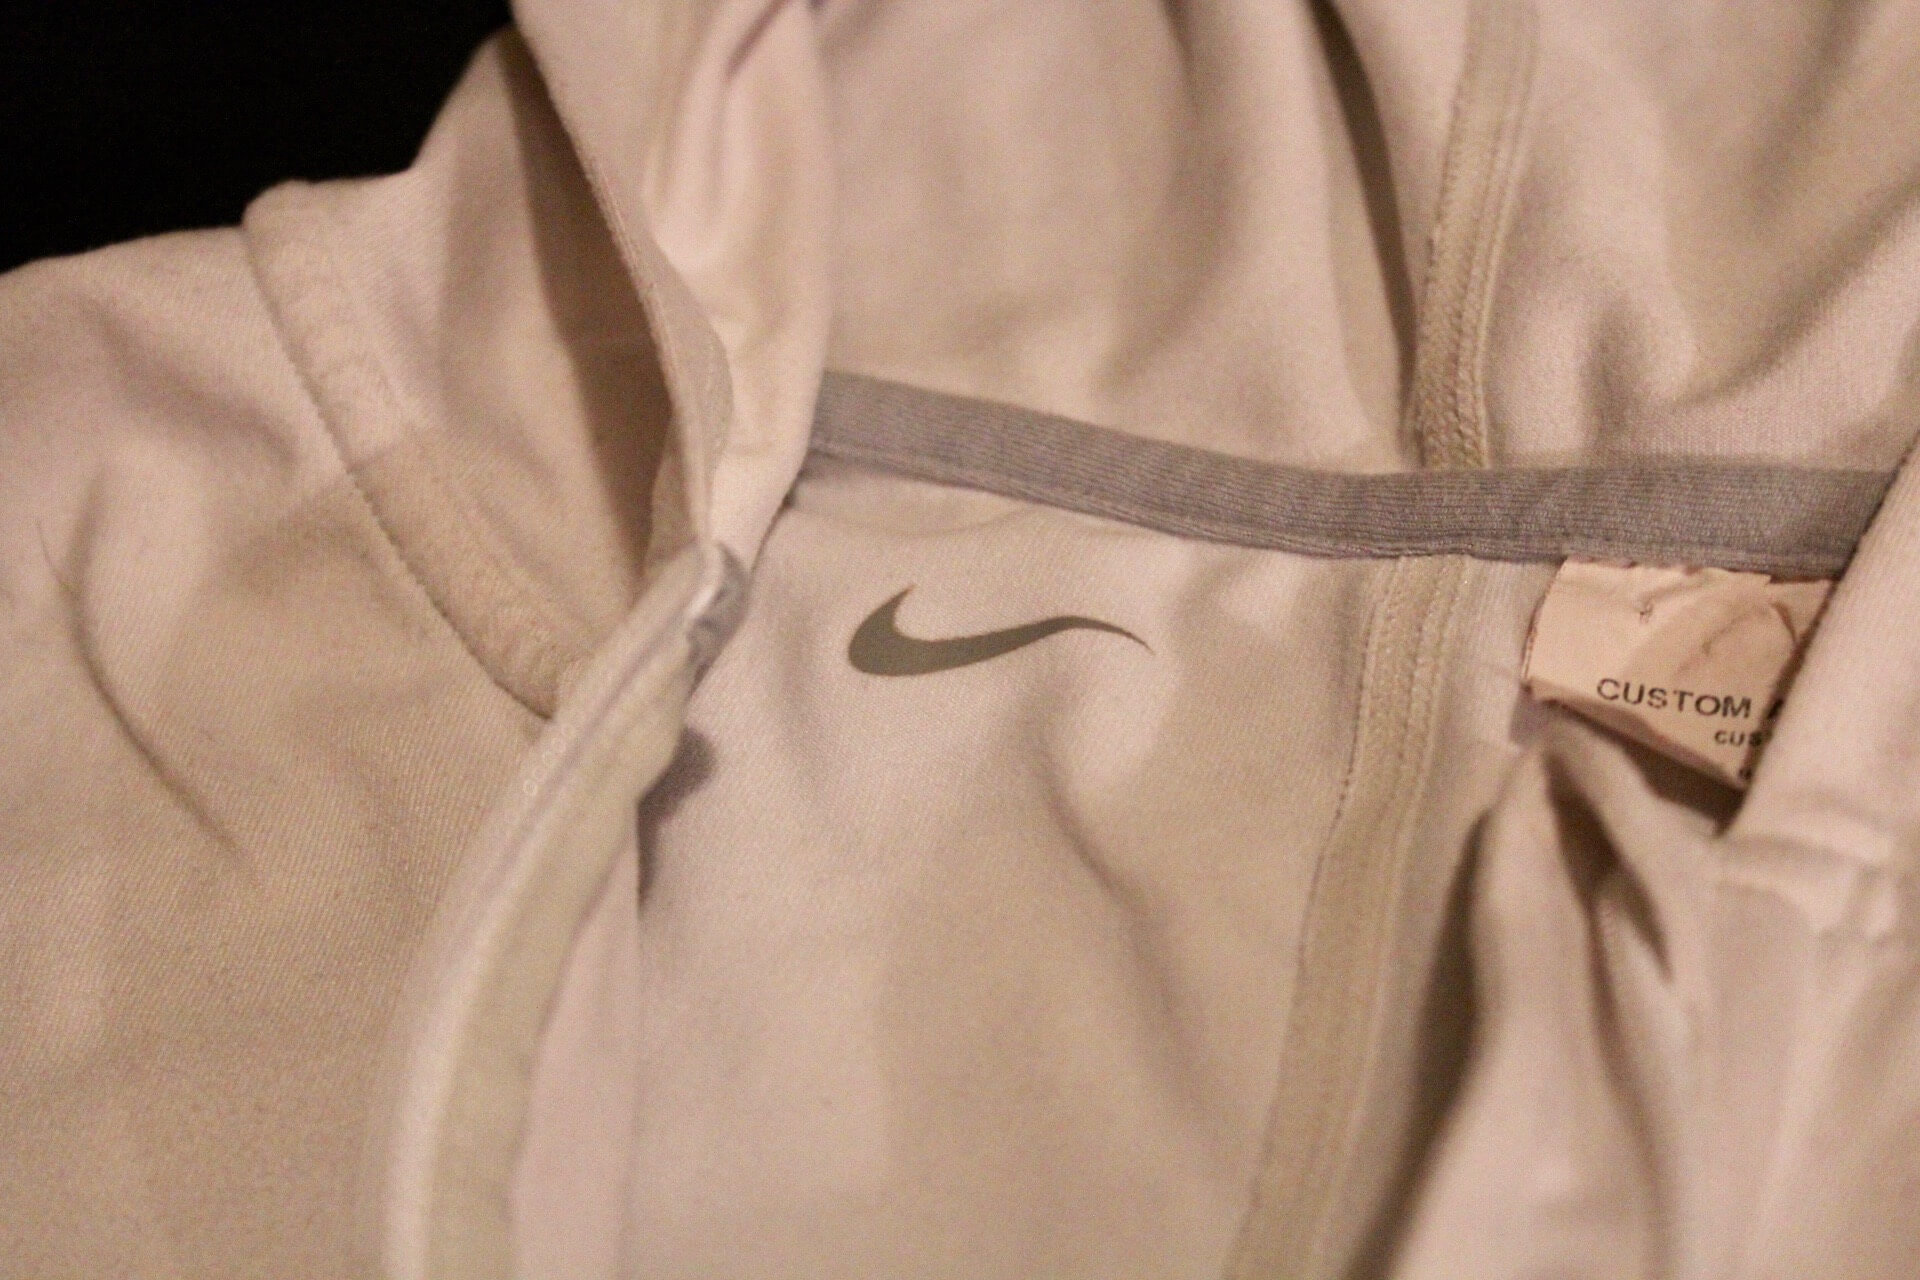 A Serena Williams Game Used Nike Tennis Hooded Training Warm Up Top. Circa 2013. | Memorabilia Expert